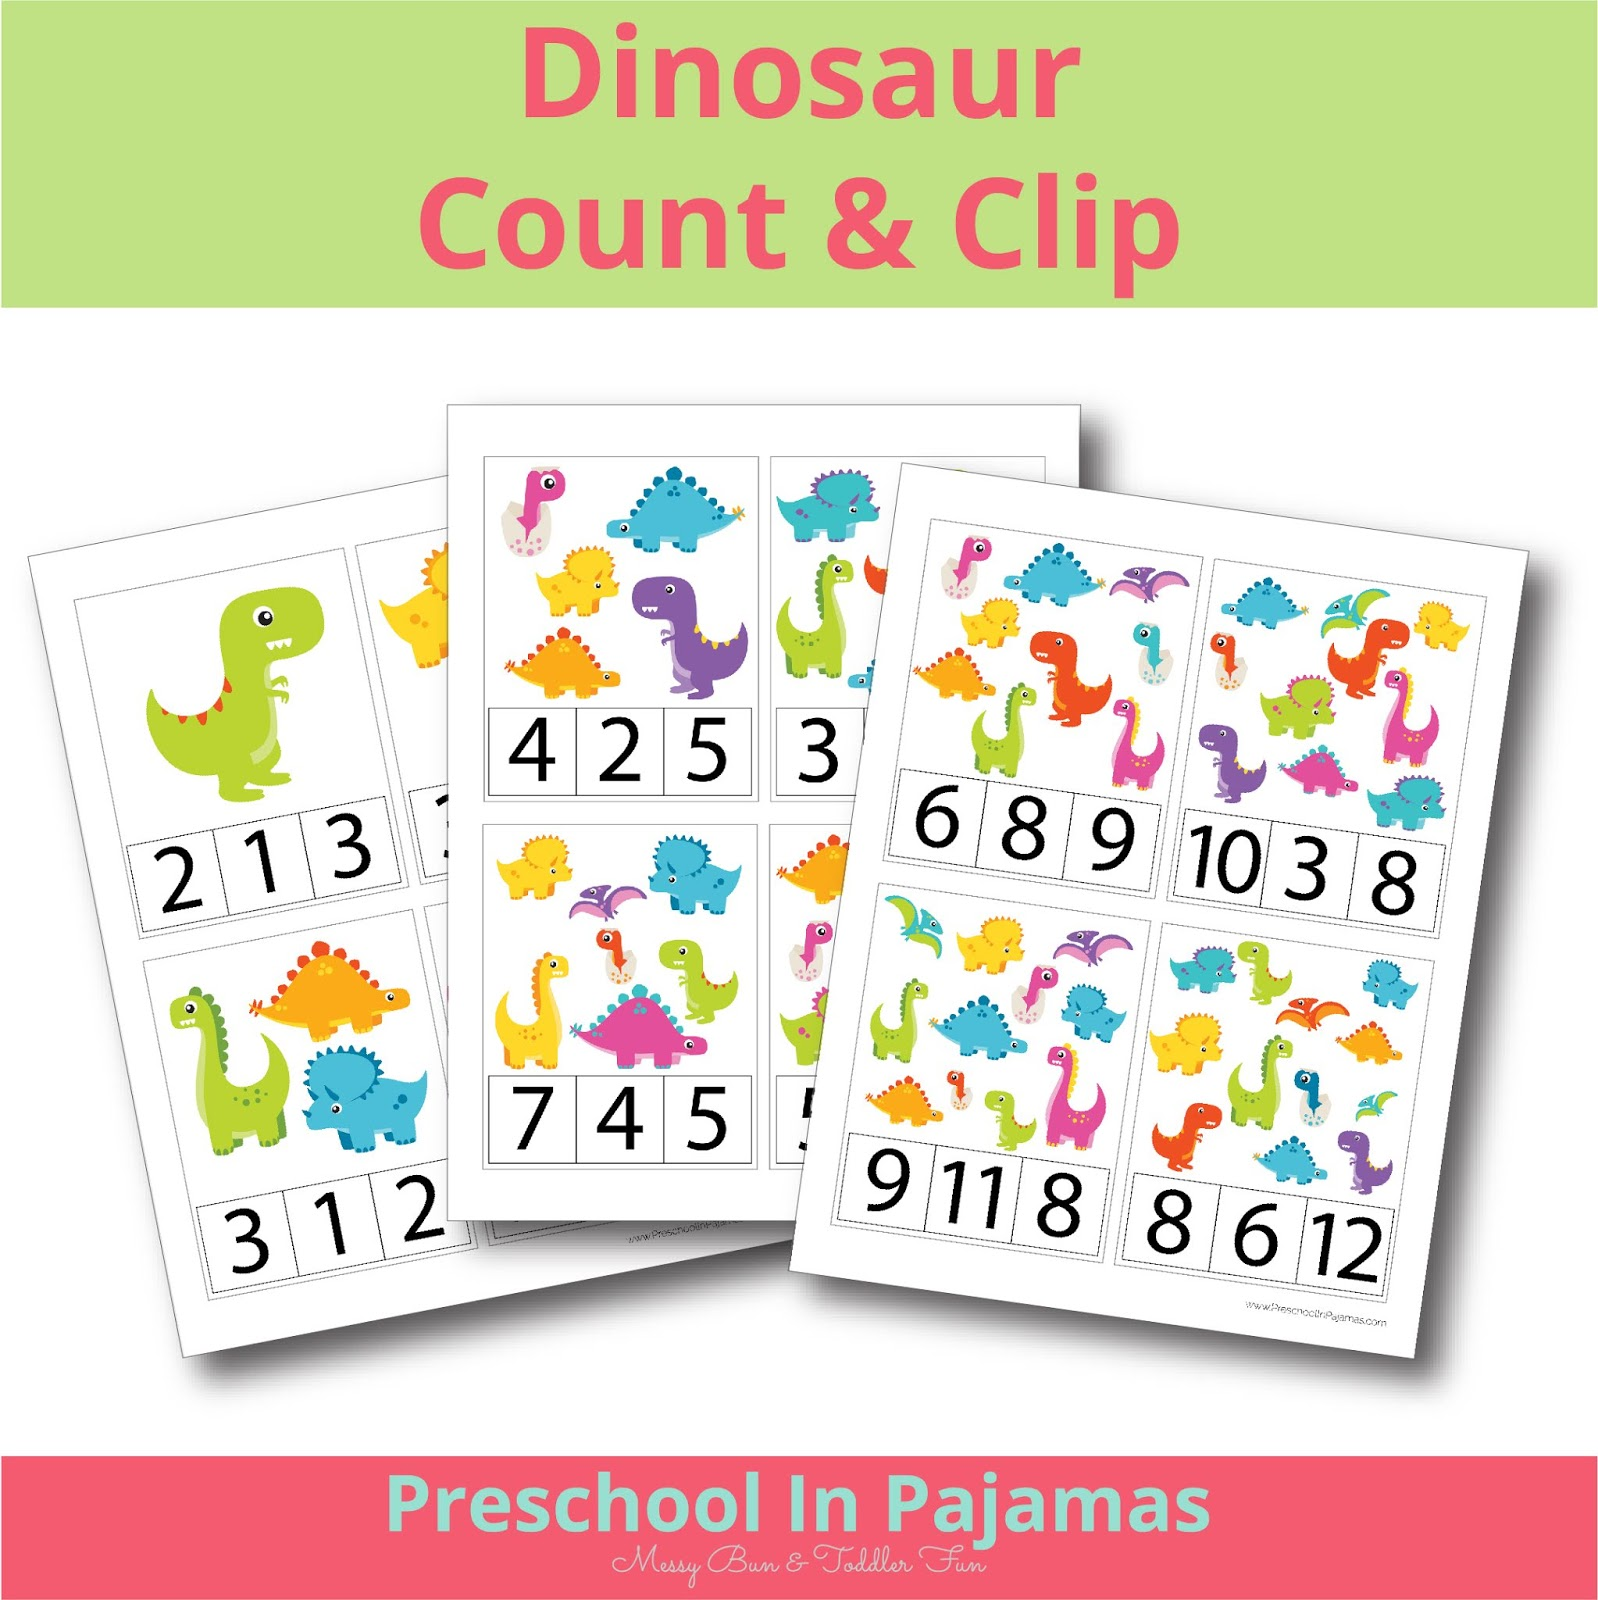 Free Dinosaur Count Amp Clip Printable Cards